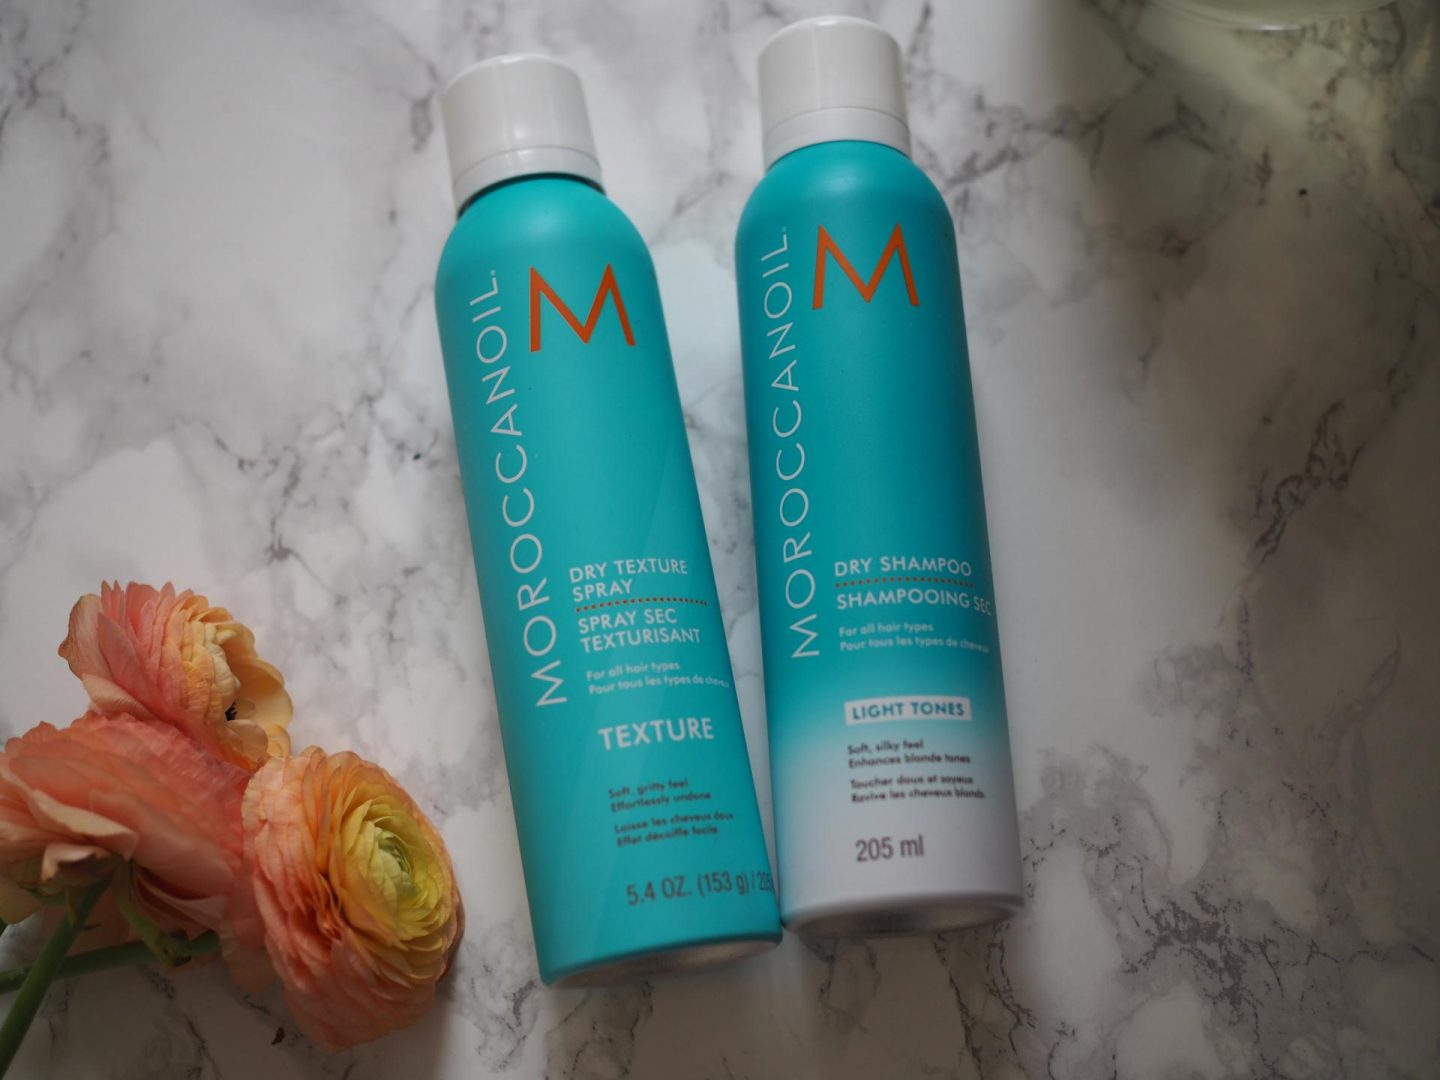 Moroccan Oil Dry Texture Spray